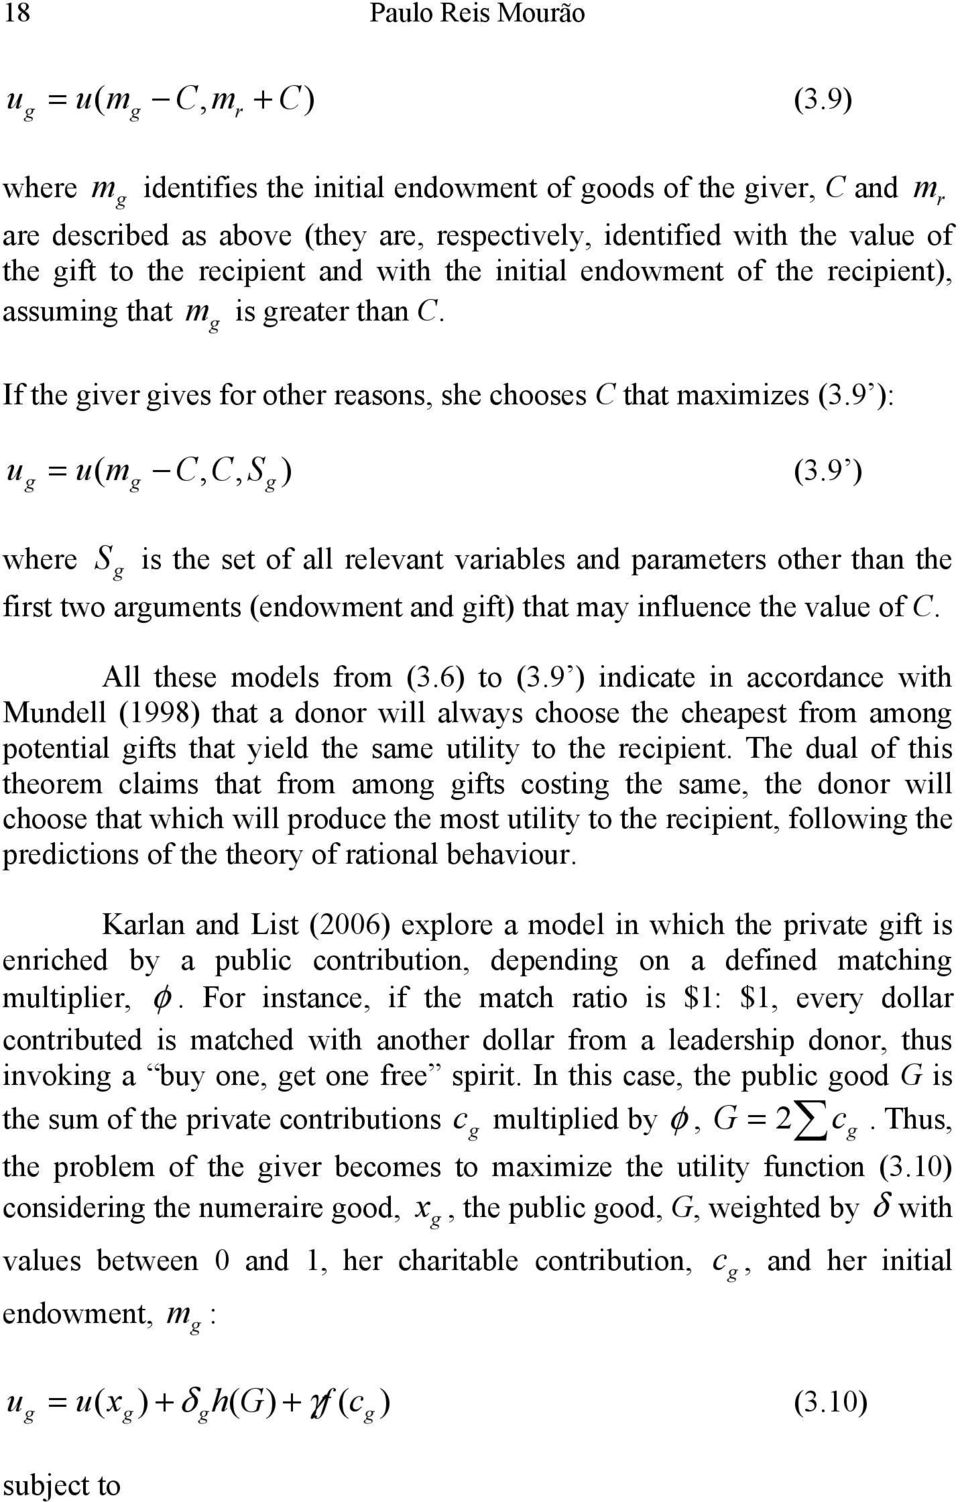 initial endowment of the recipient), assuming that is greater than C. m g If the giver gives for other reasons, she chooses C that maximizes (3.9 ): mr u g u m C, C, S ) (3.